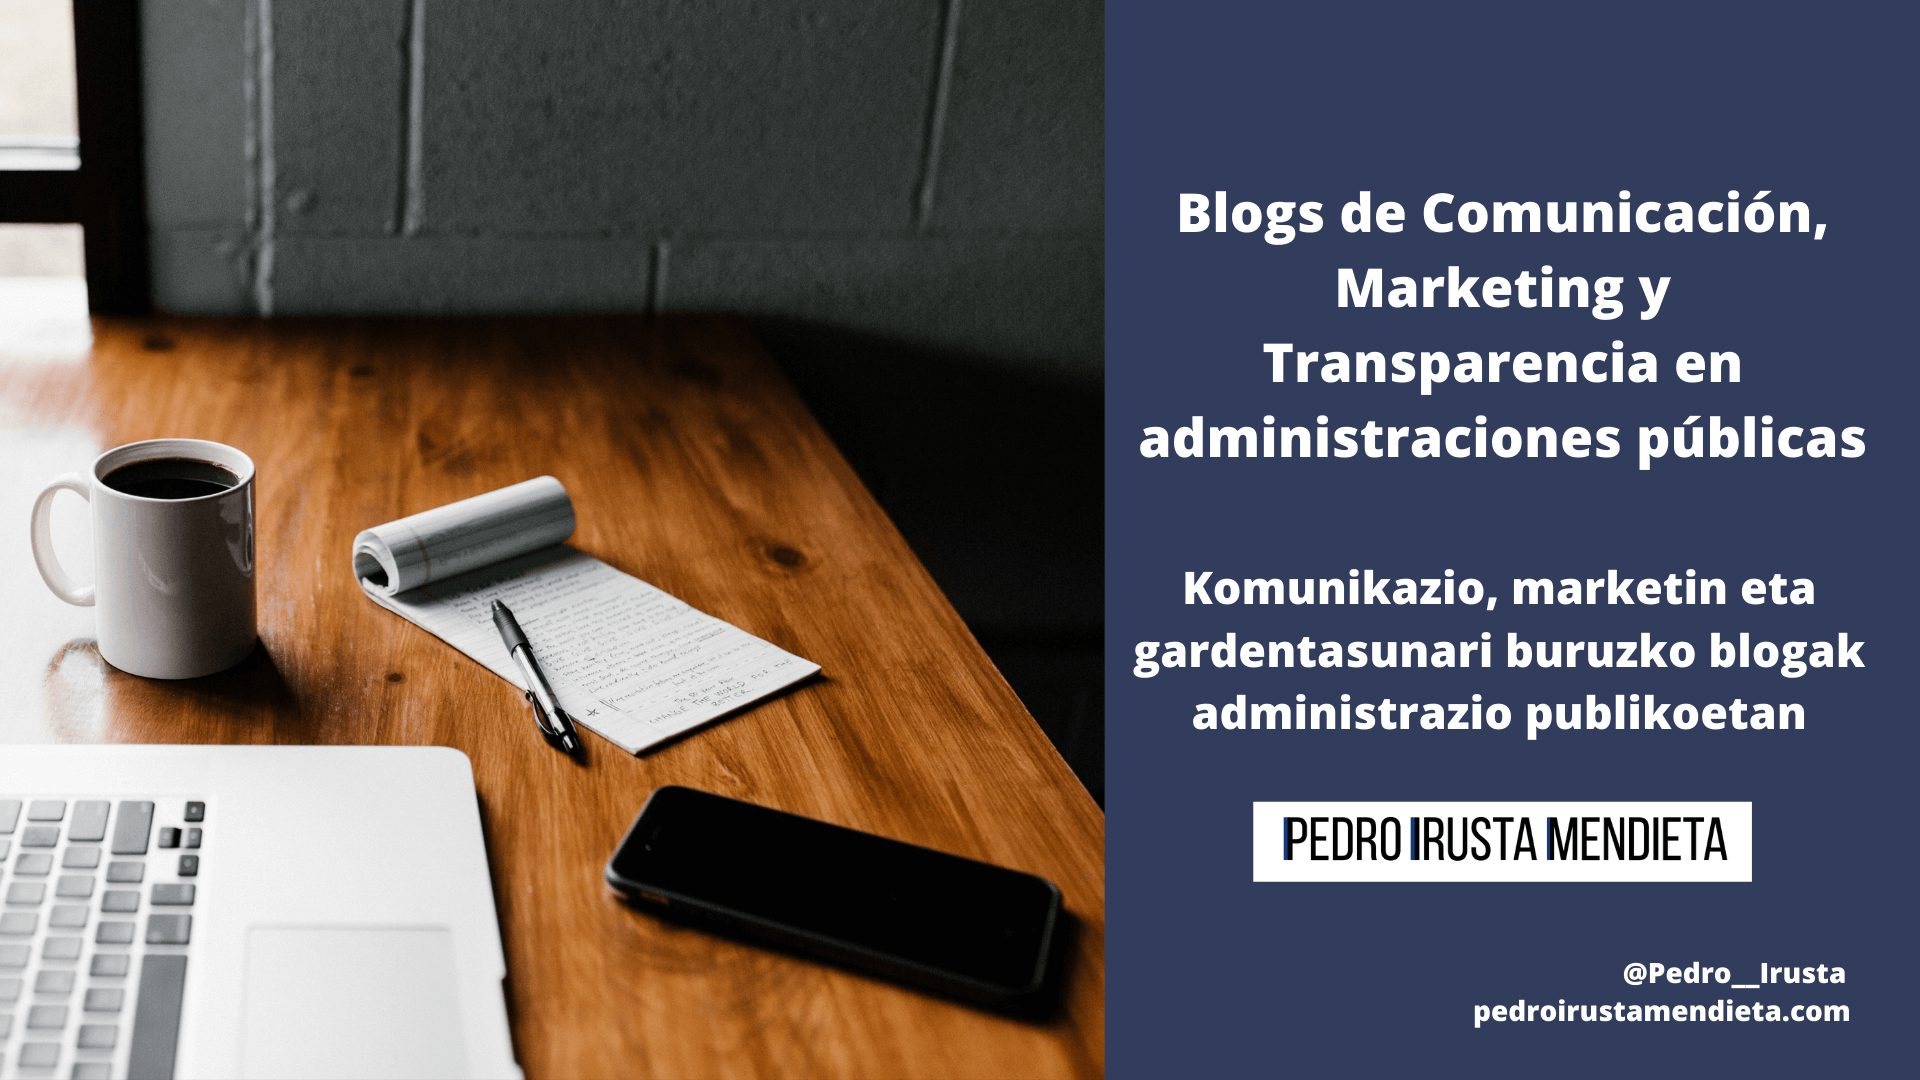 Blogs-comunicación-marketing-transparencia-administraciones-públicas